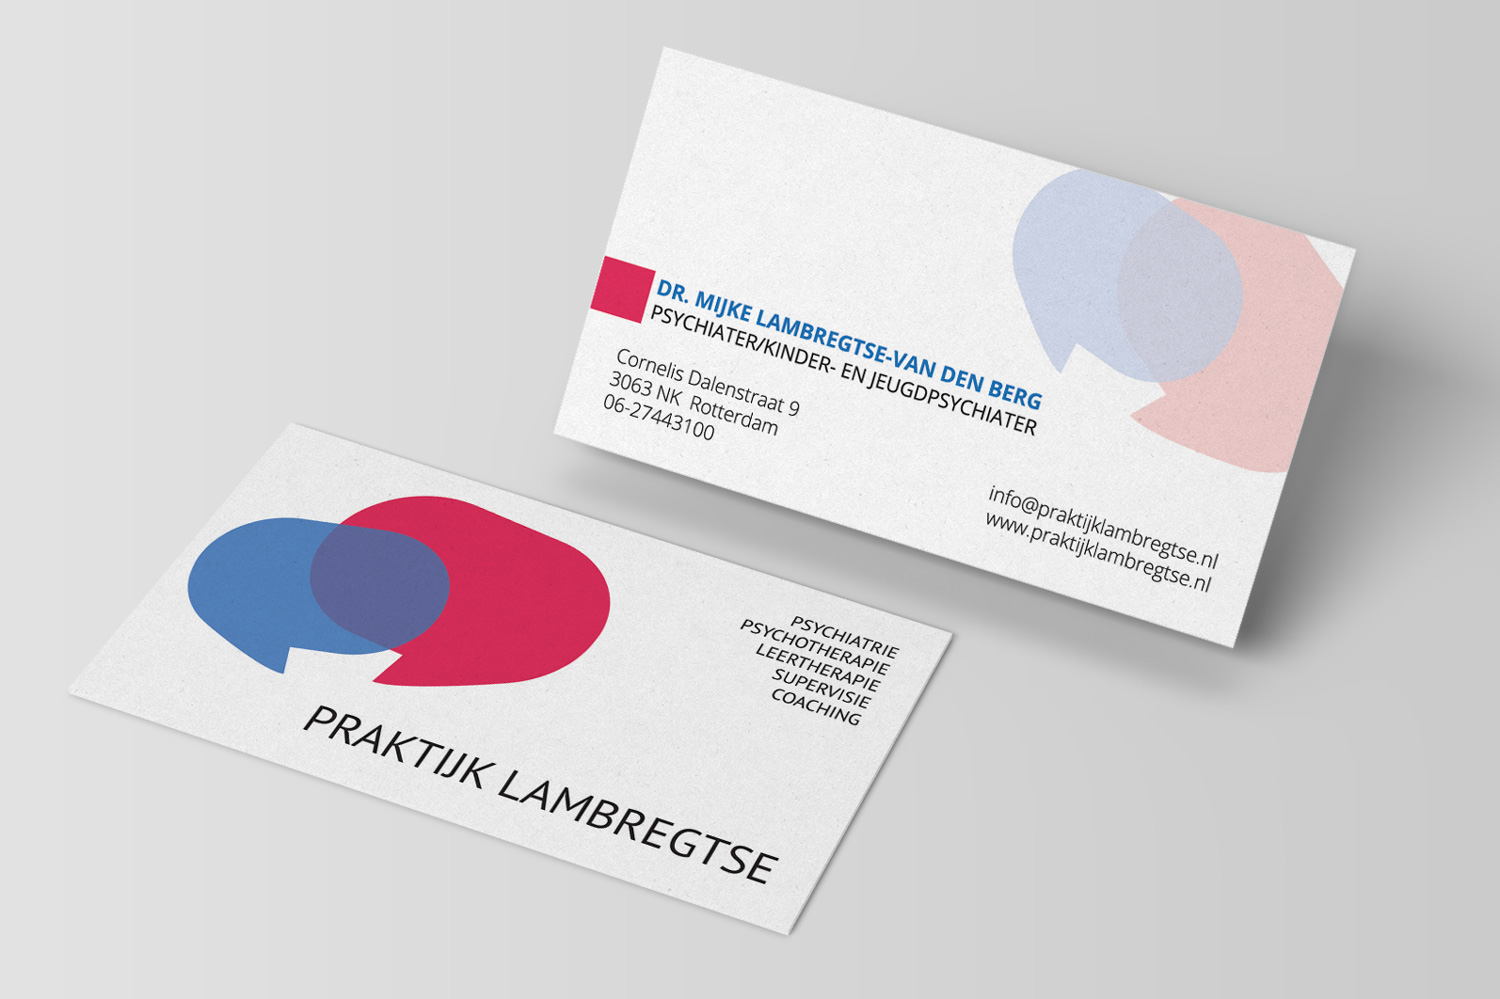 71 modern business card designs mental health business card design business card design by andrey t for praktijk lambregtse design 14361492 colourmoves